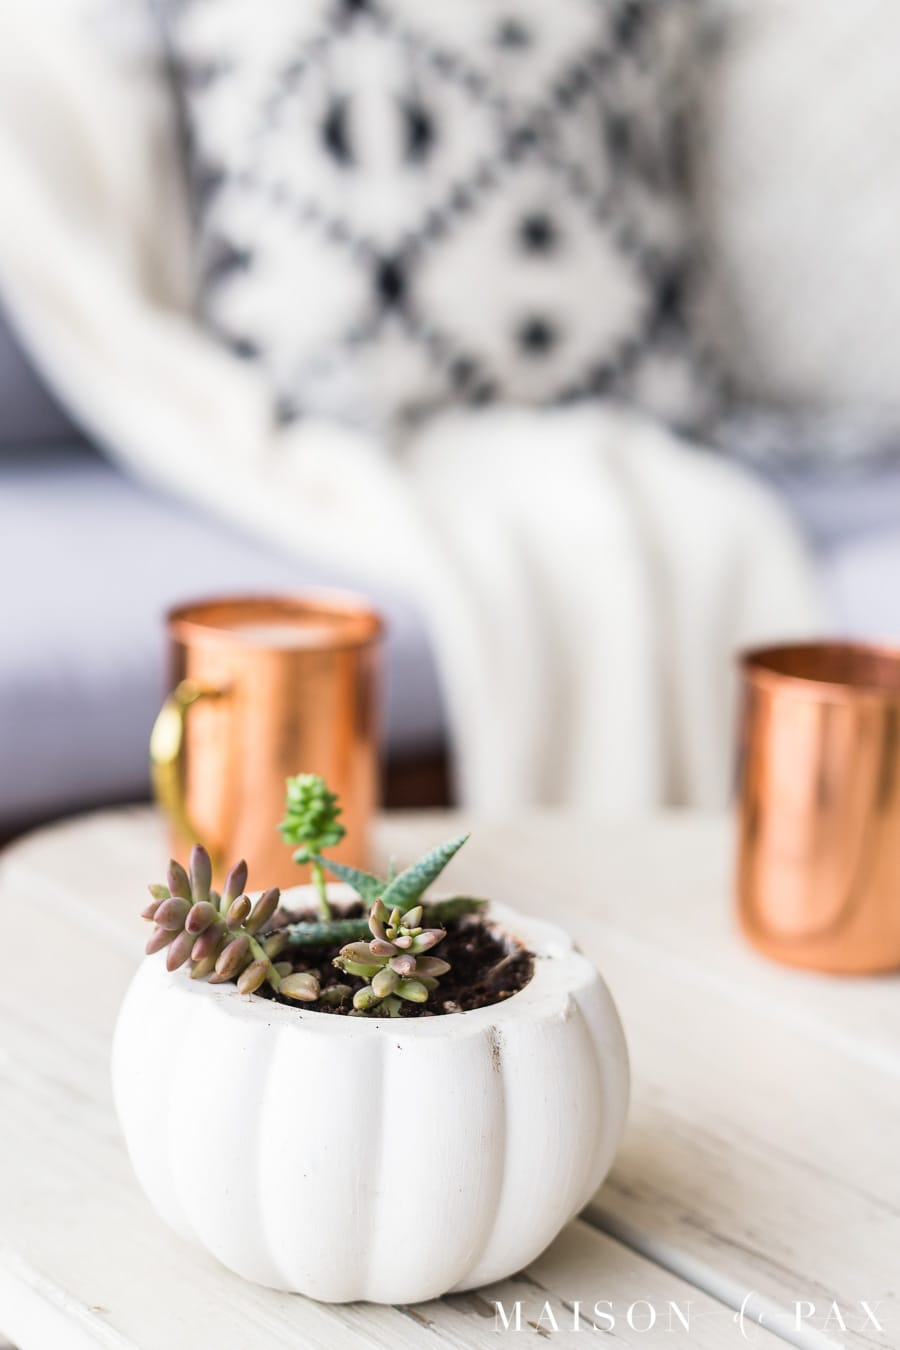 learn how to make succulent pumpkin planters! #falldecor #falldecorating #succulents #pumkins #fallporch #outdoorliving #patio